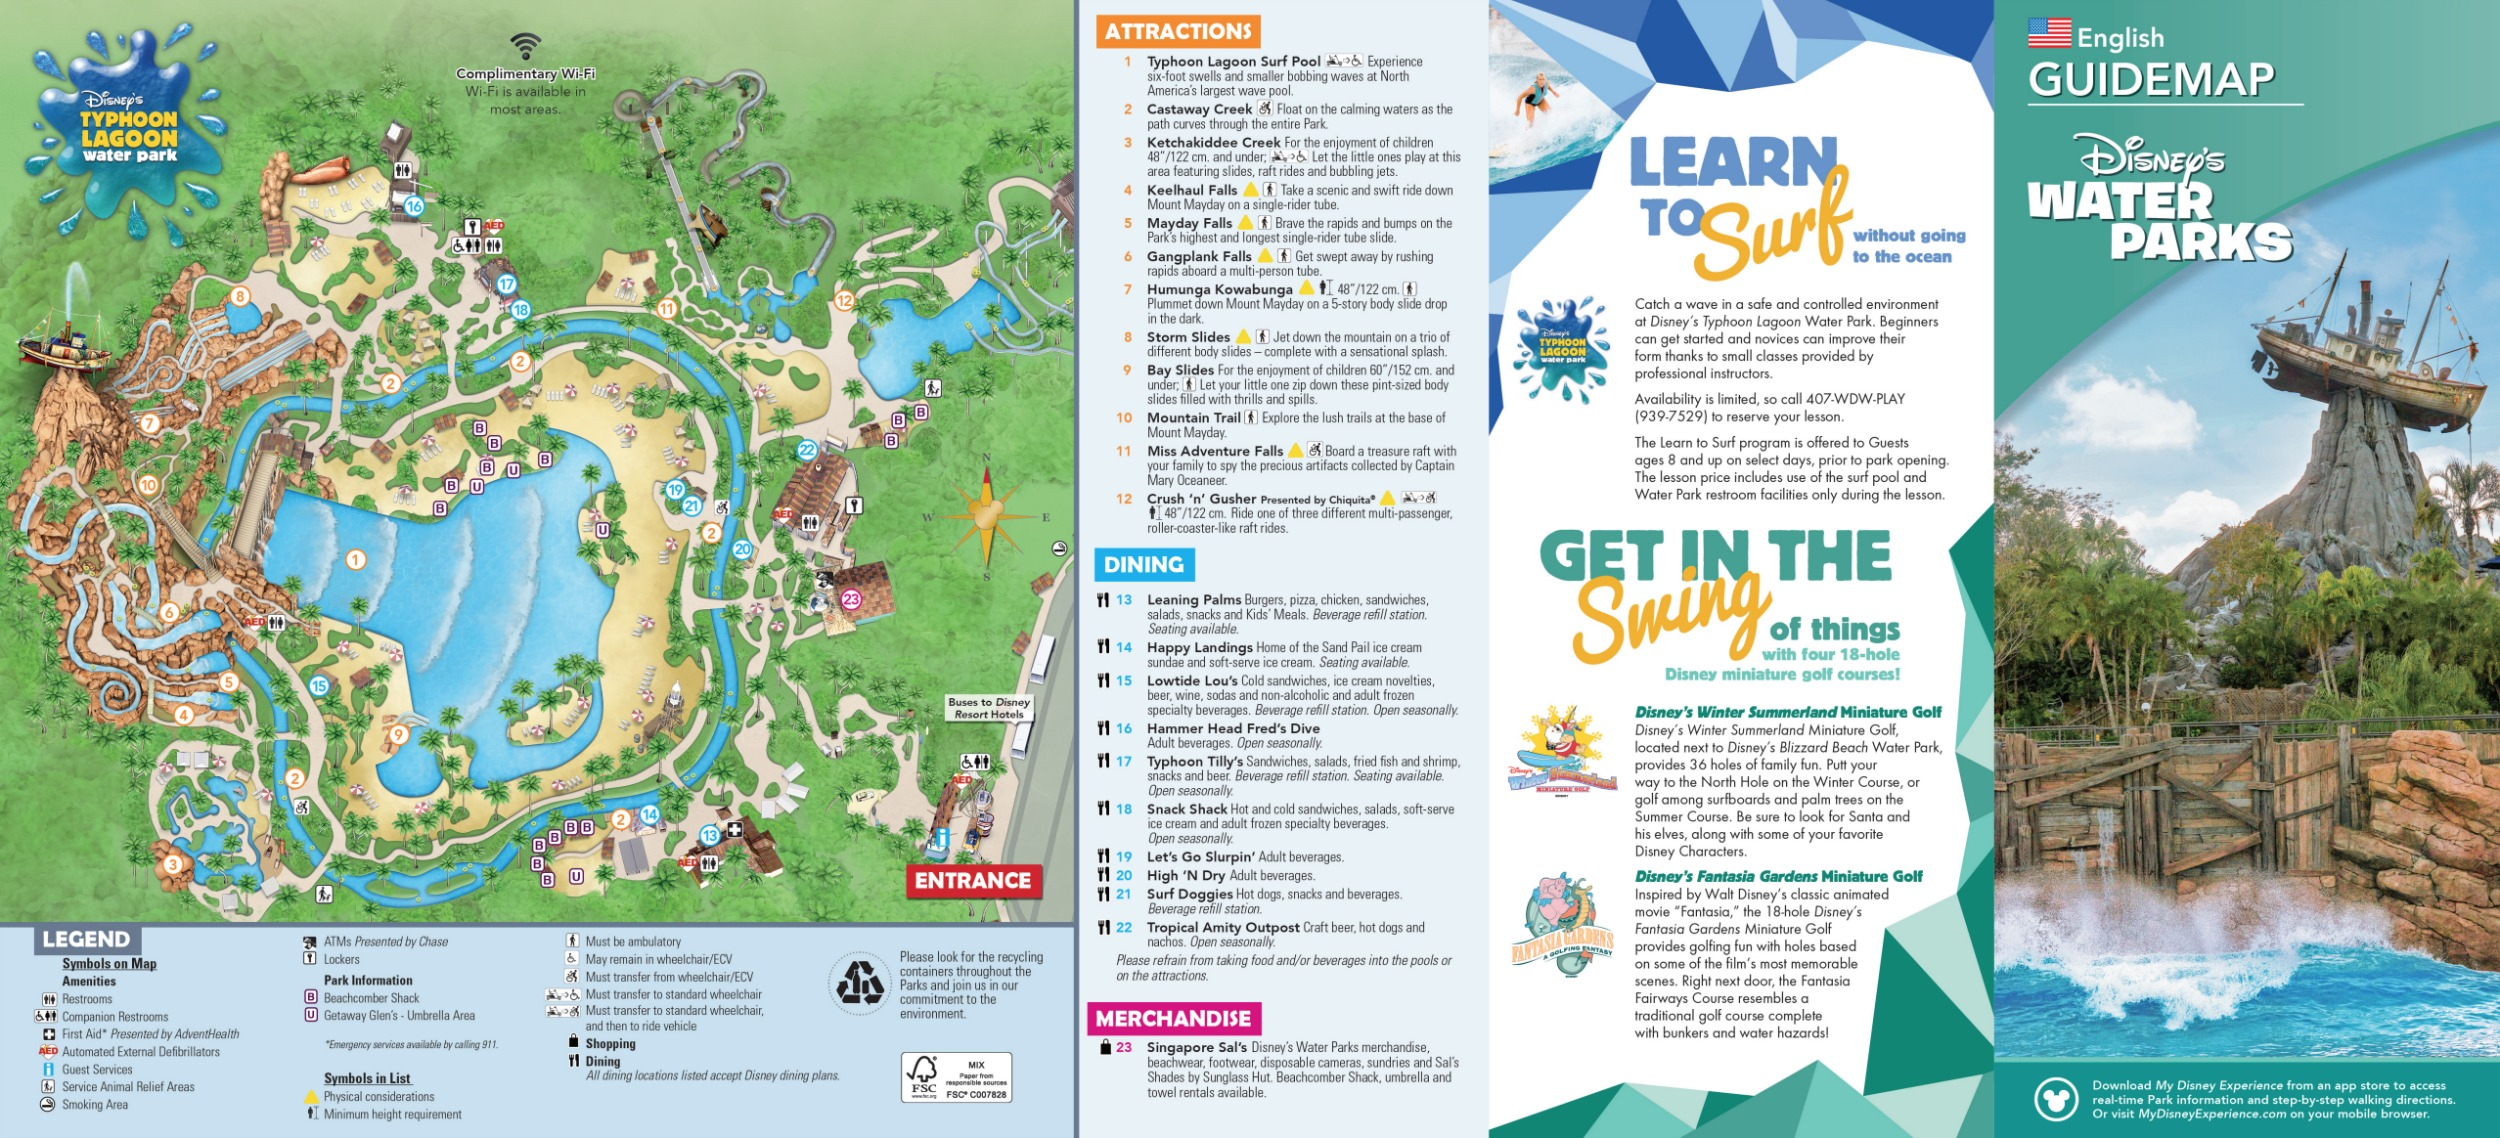 Disney's Typhoon Lagoon Water Park map